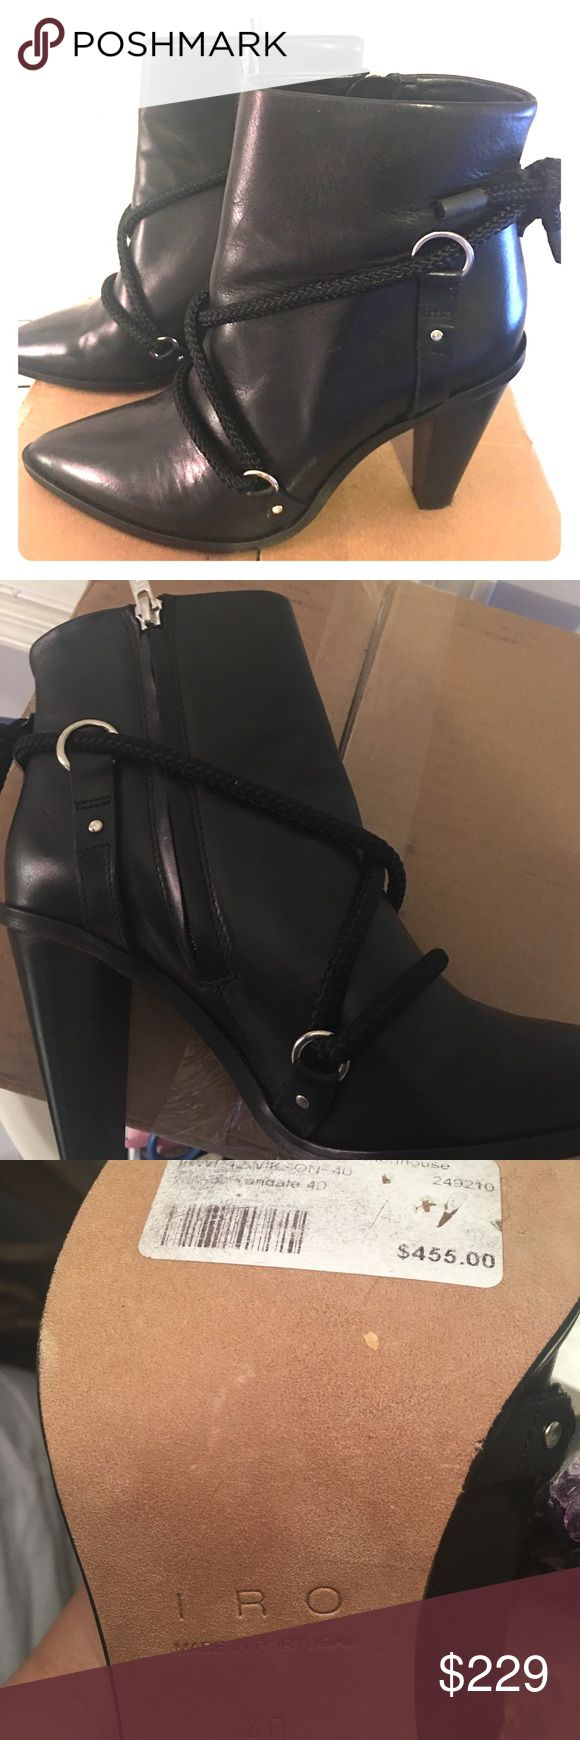 Italian imported genuine leather boots Italian imported real leather boots. Has a stylish wrap chord around each boot at the ankle. New never worn. Brand: IRO. Original price shown on boot bottom $455 Size euro 40 IRO Shoes Ankle Boots & Booties